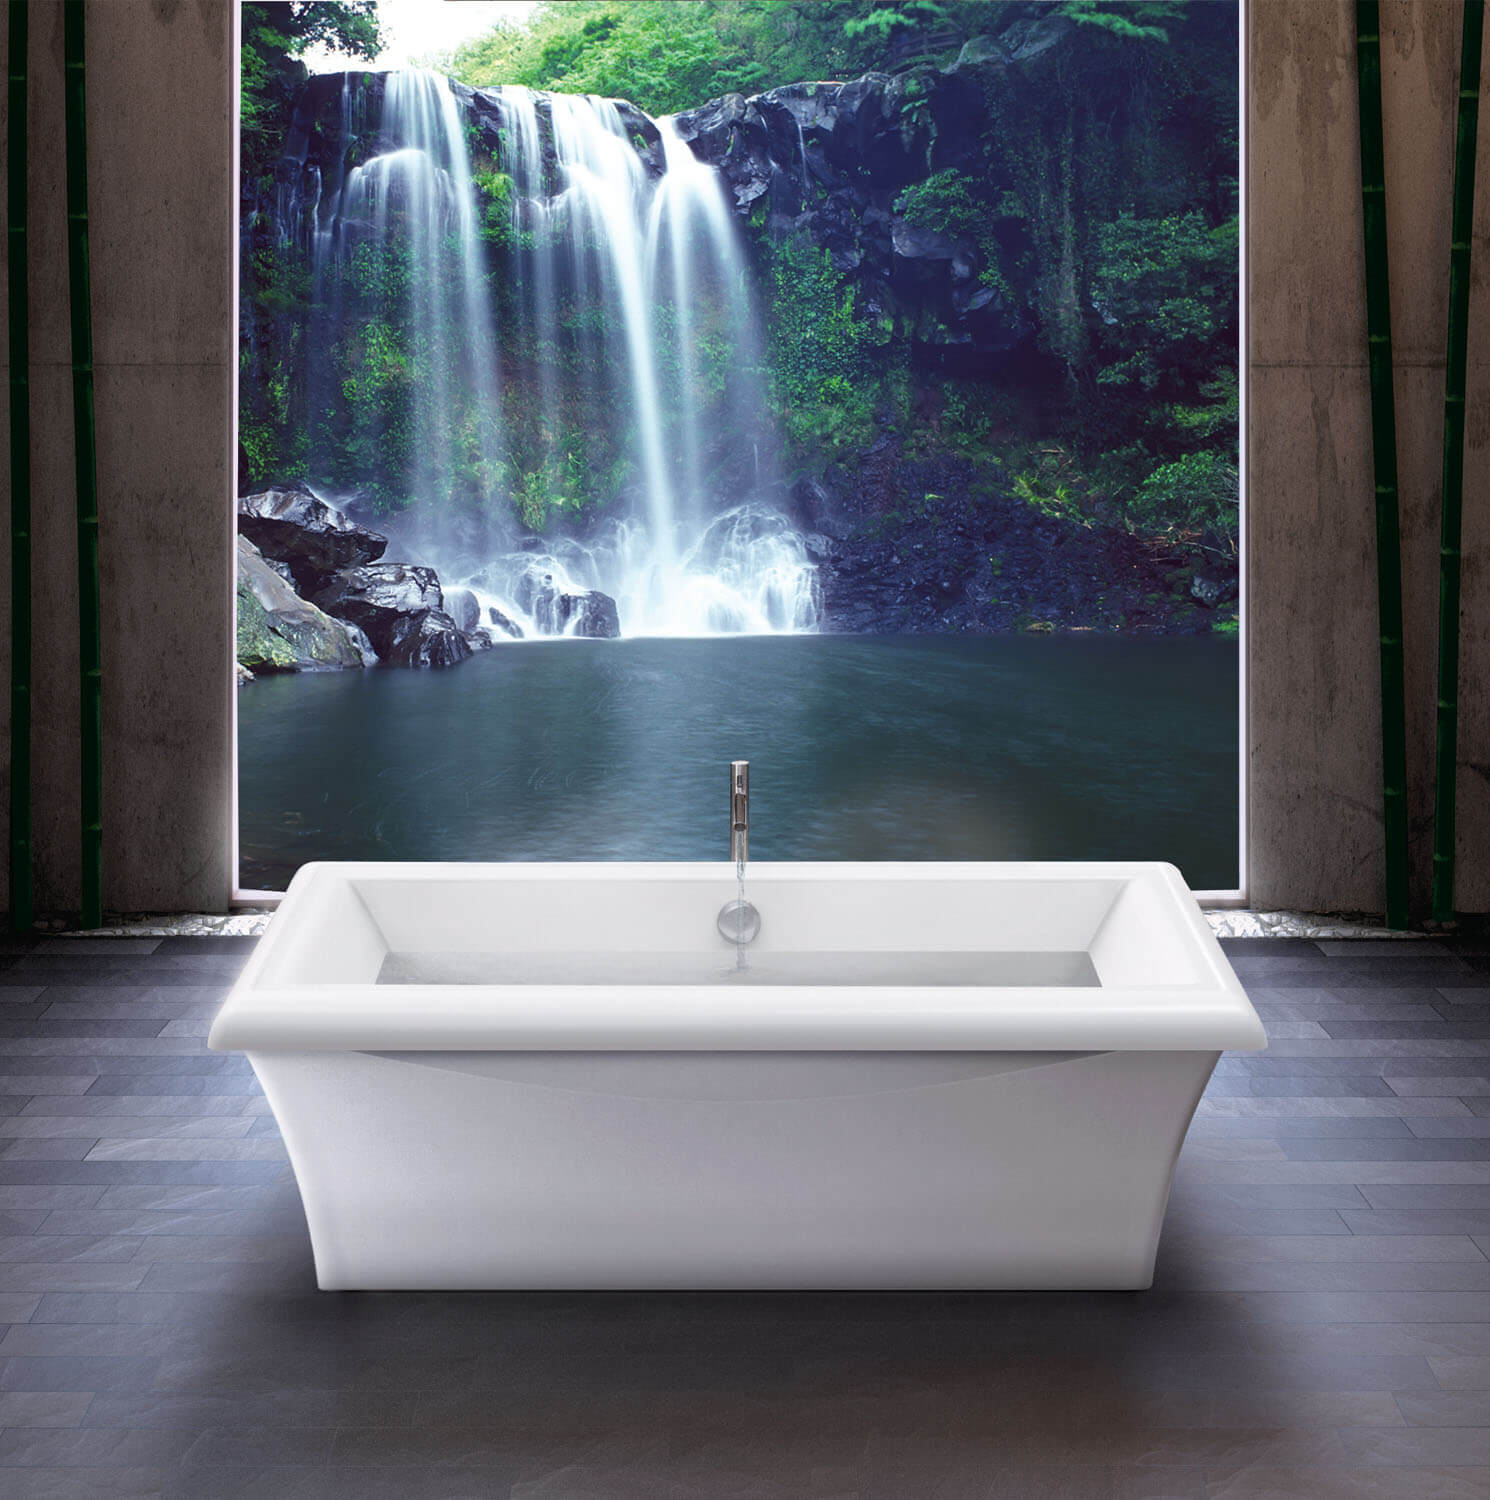 Bainultra Origami® 6838 Design Series freestanding air jet bathtub for your modern bathroom